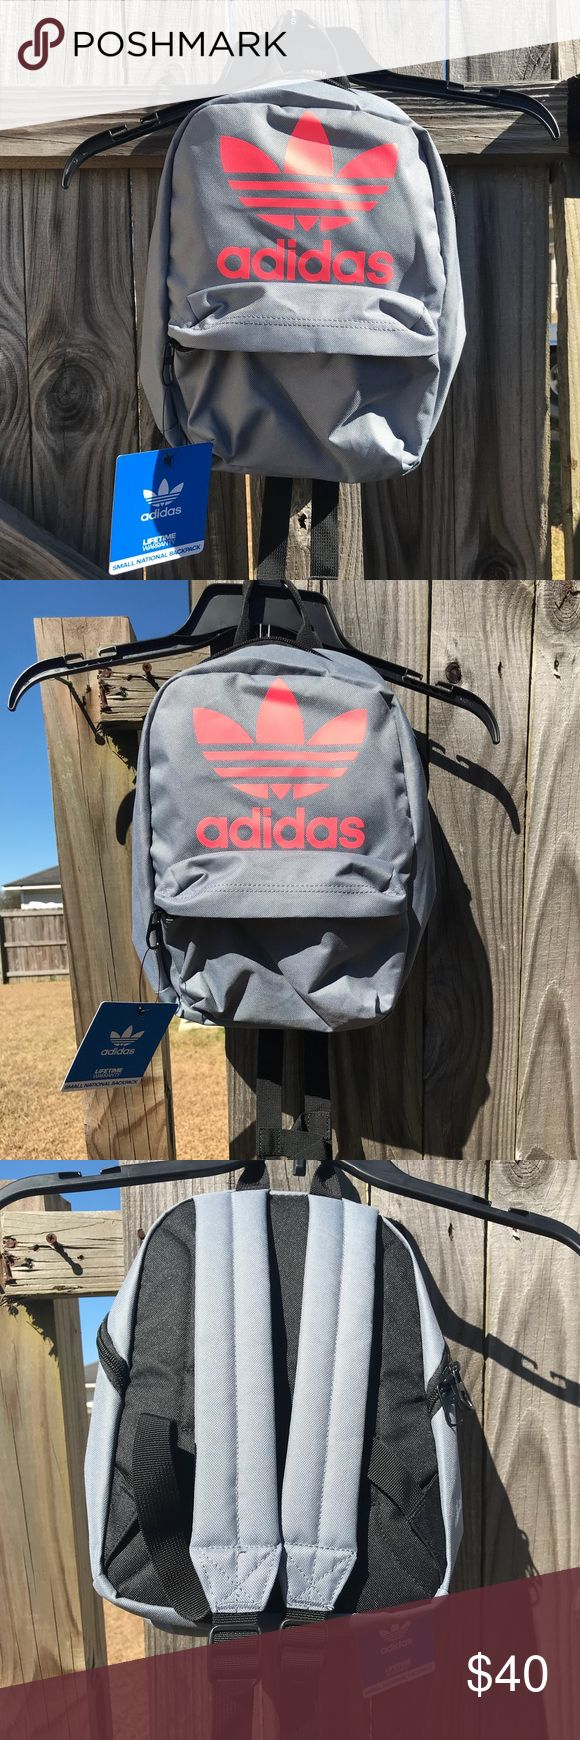 Brand New Adidas Backpack🎉 Accepting Offers🎈 Brand New Adidas Small National Backpack🎉 W/ tags (Lifetime Warranty)✨ adidas Bags Backpacks